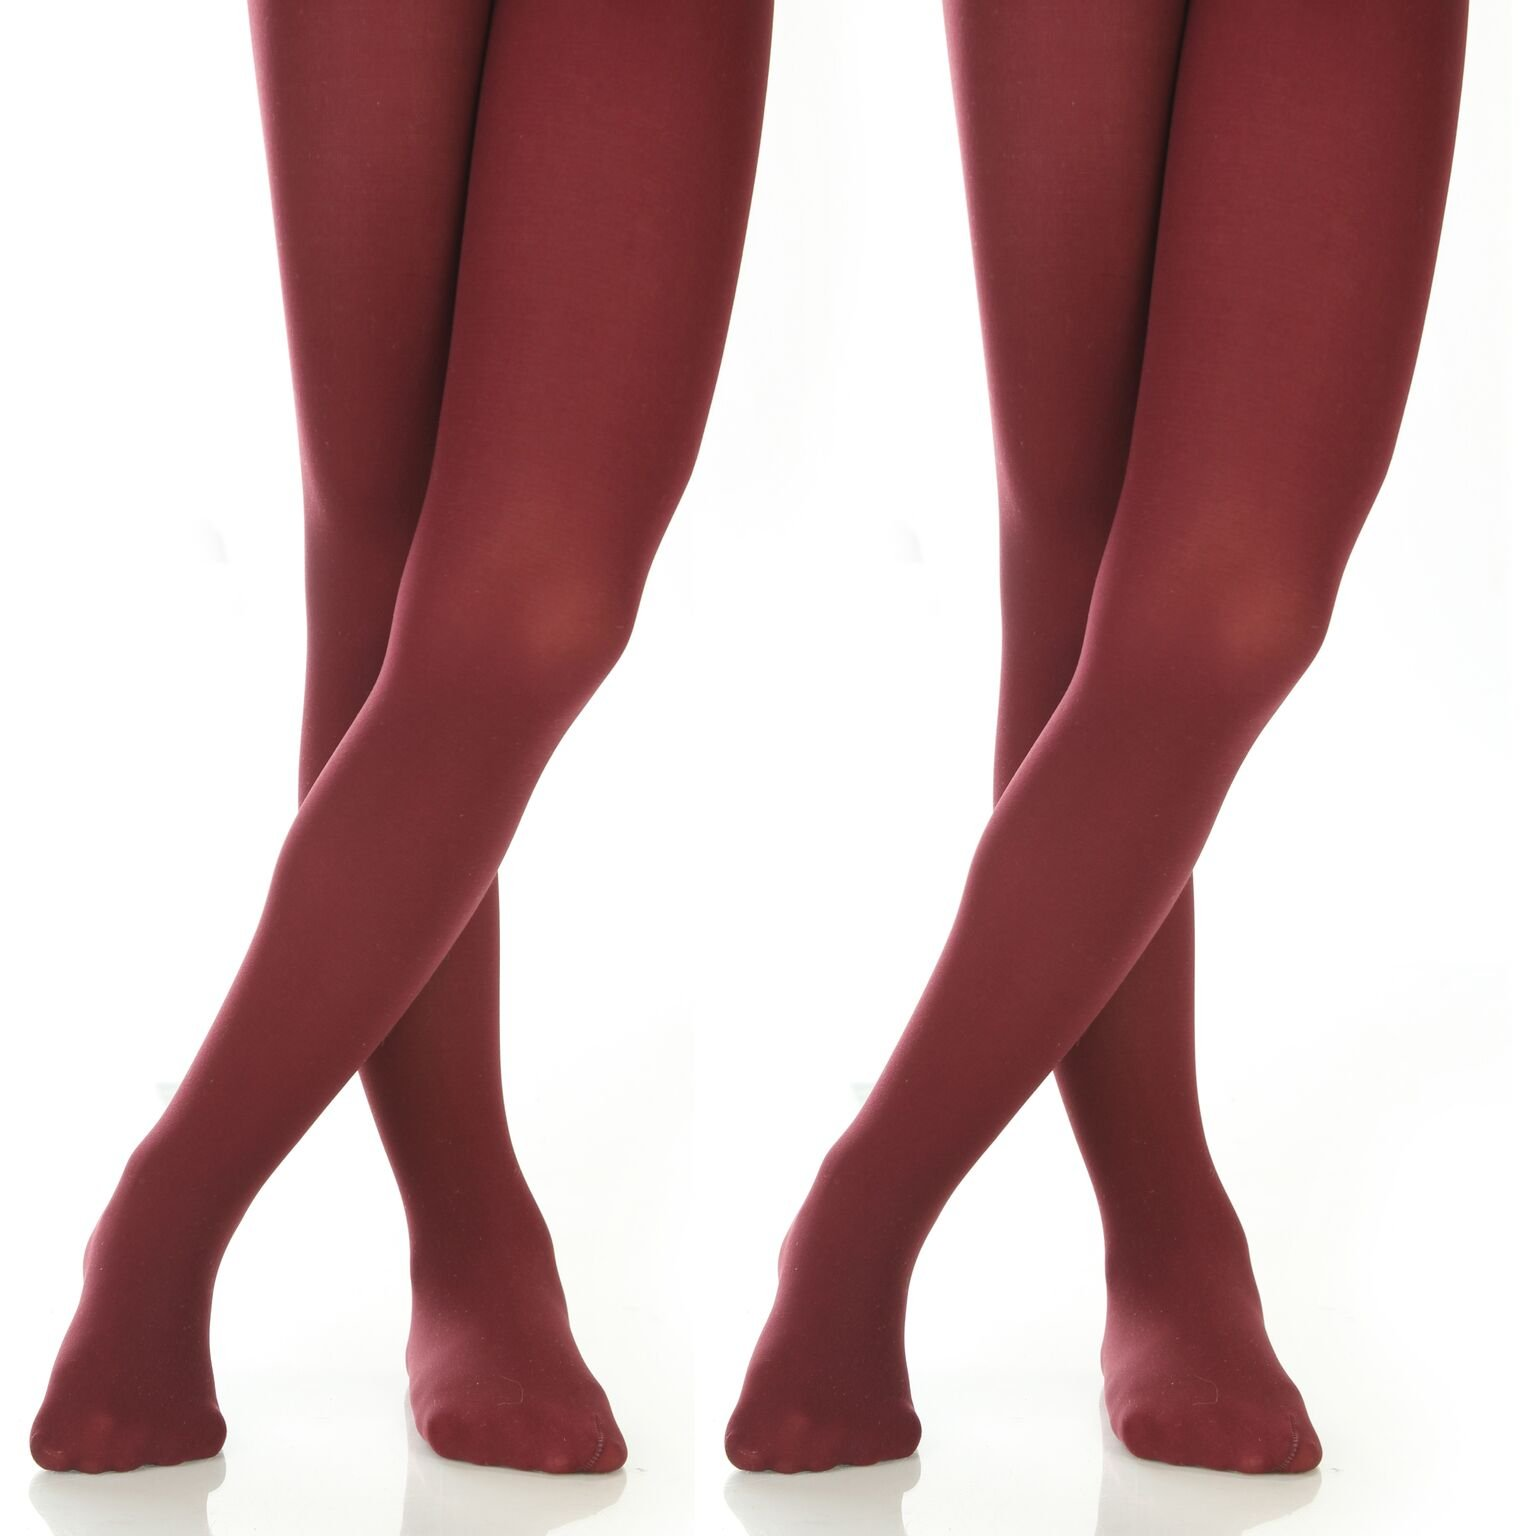 adec0fc3a016b Galleon - Silky Toes Girls' Microfiber Opaque Footed Tights- 2 Per Pack  (Size: 12-14, Burgundy (2 Pairs))